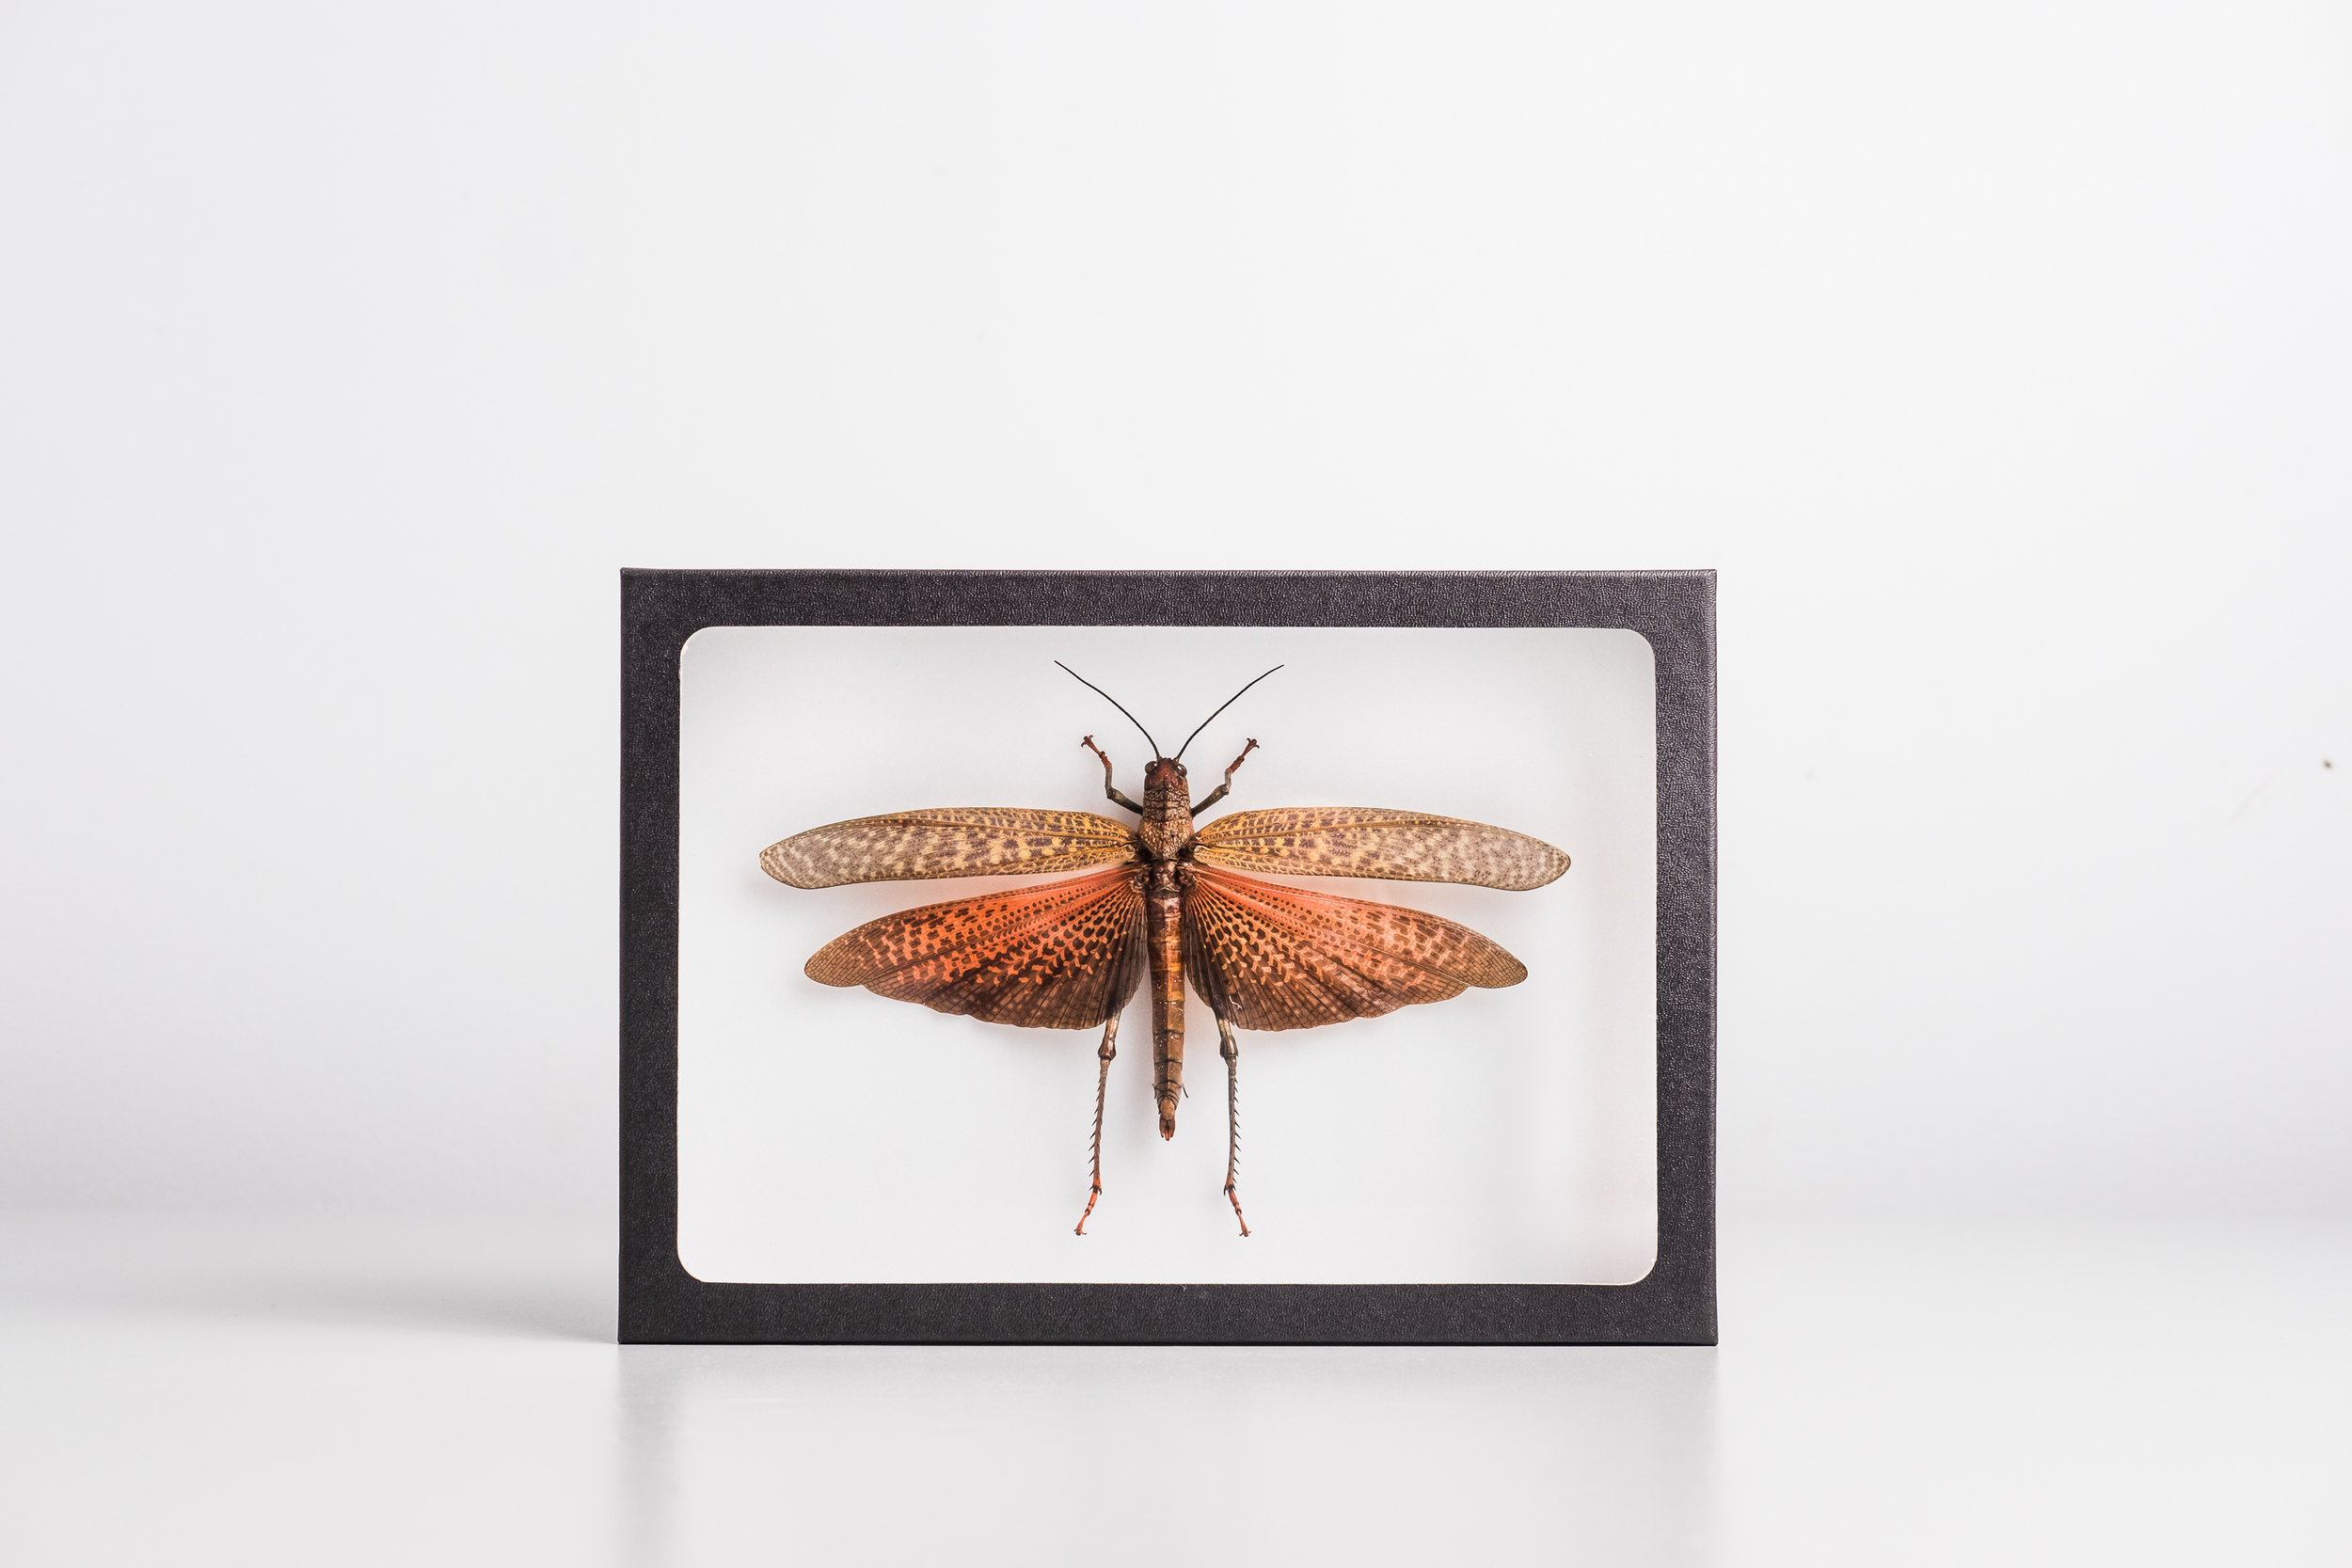 insect-art-insectarium-collaboration-avec-artists